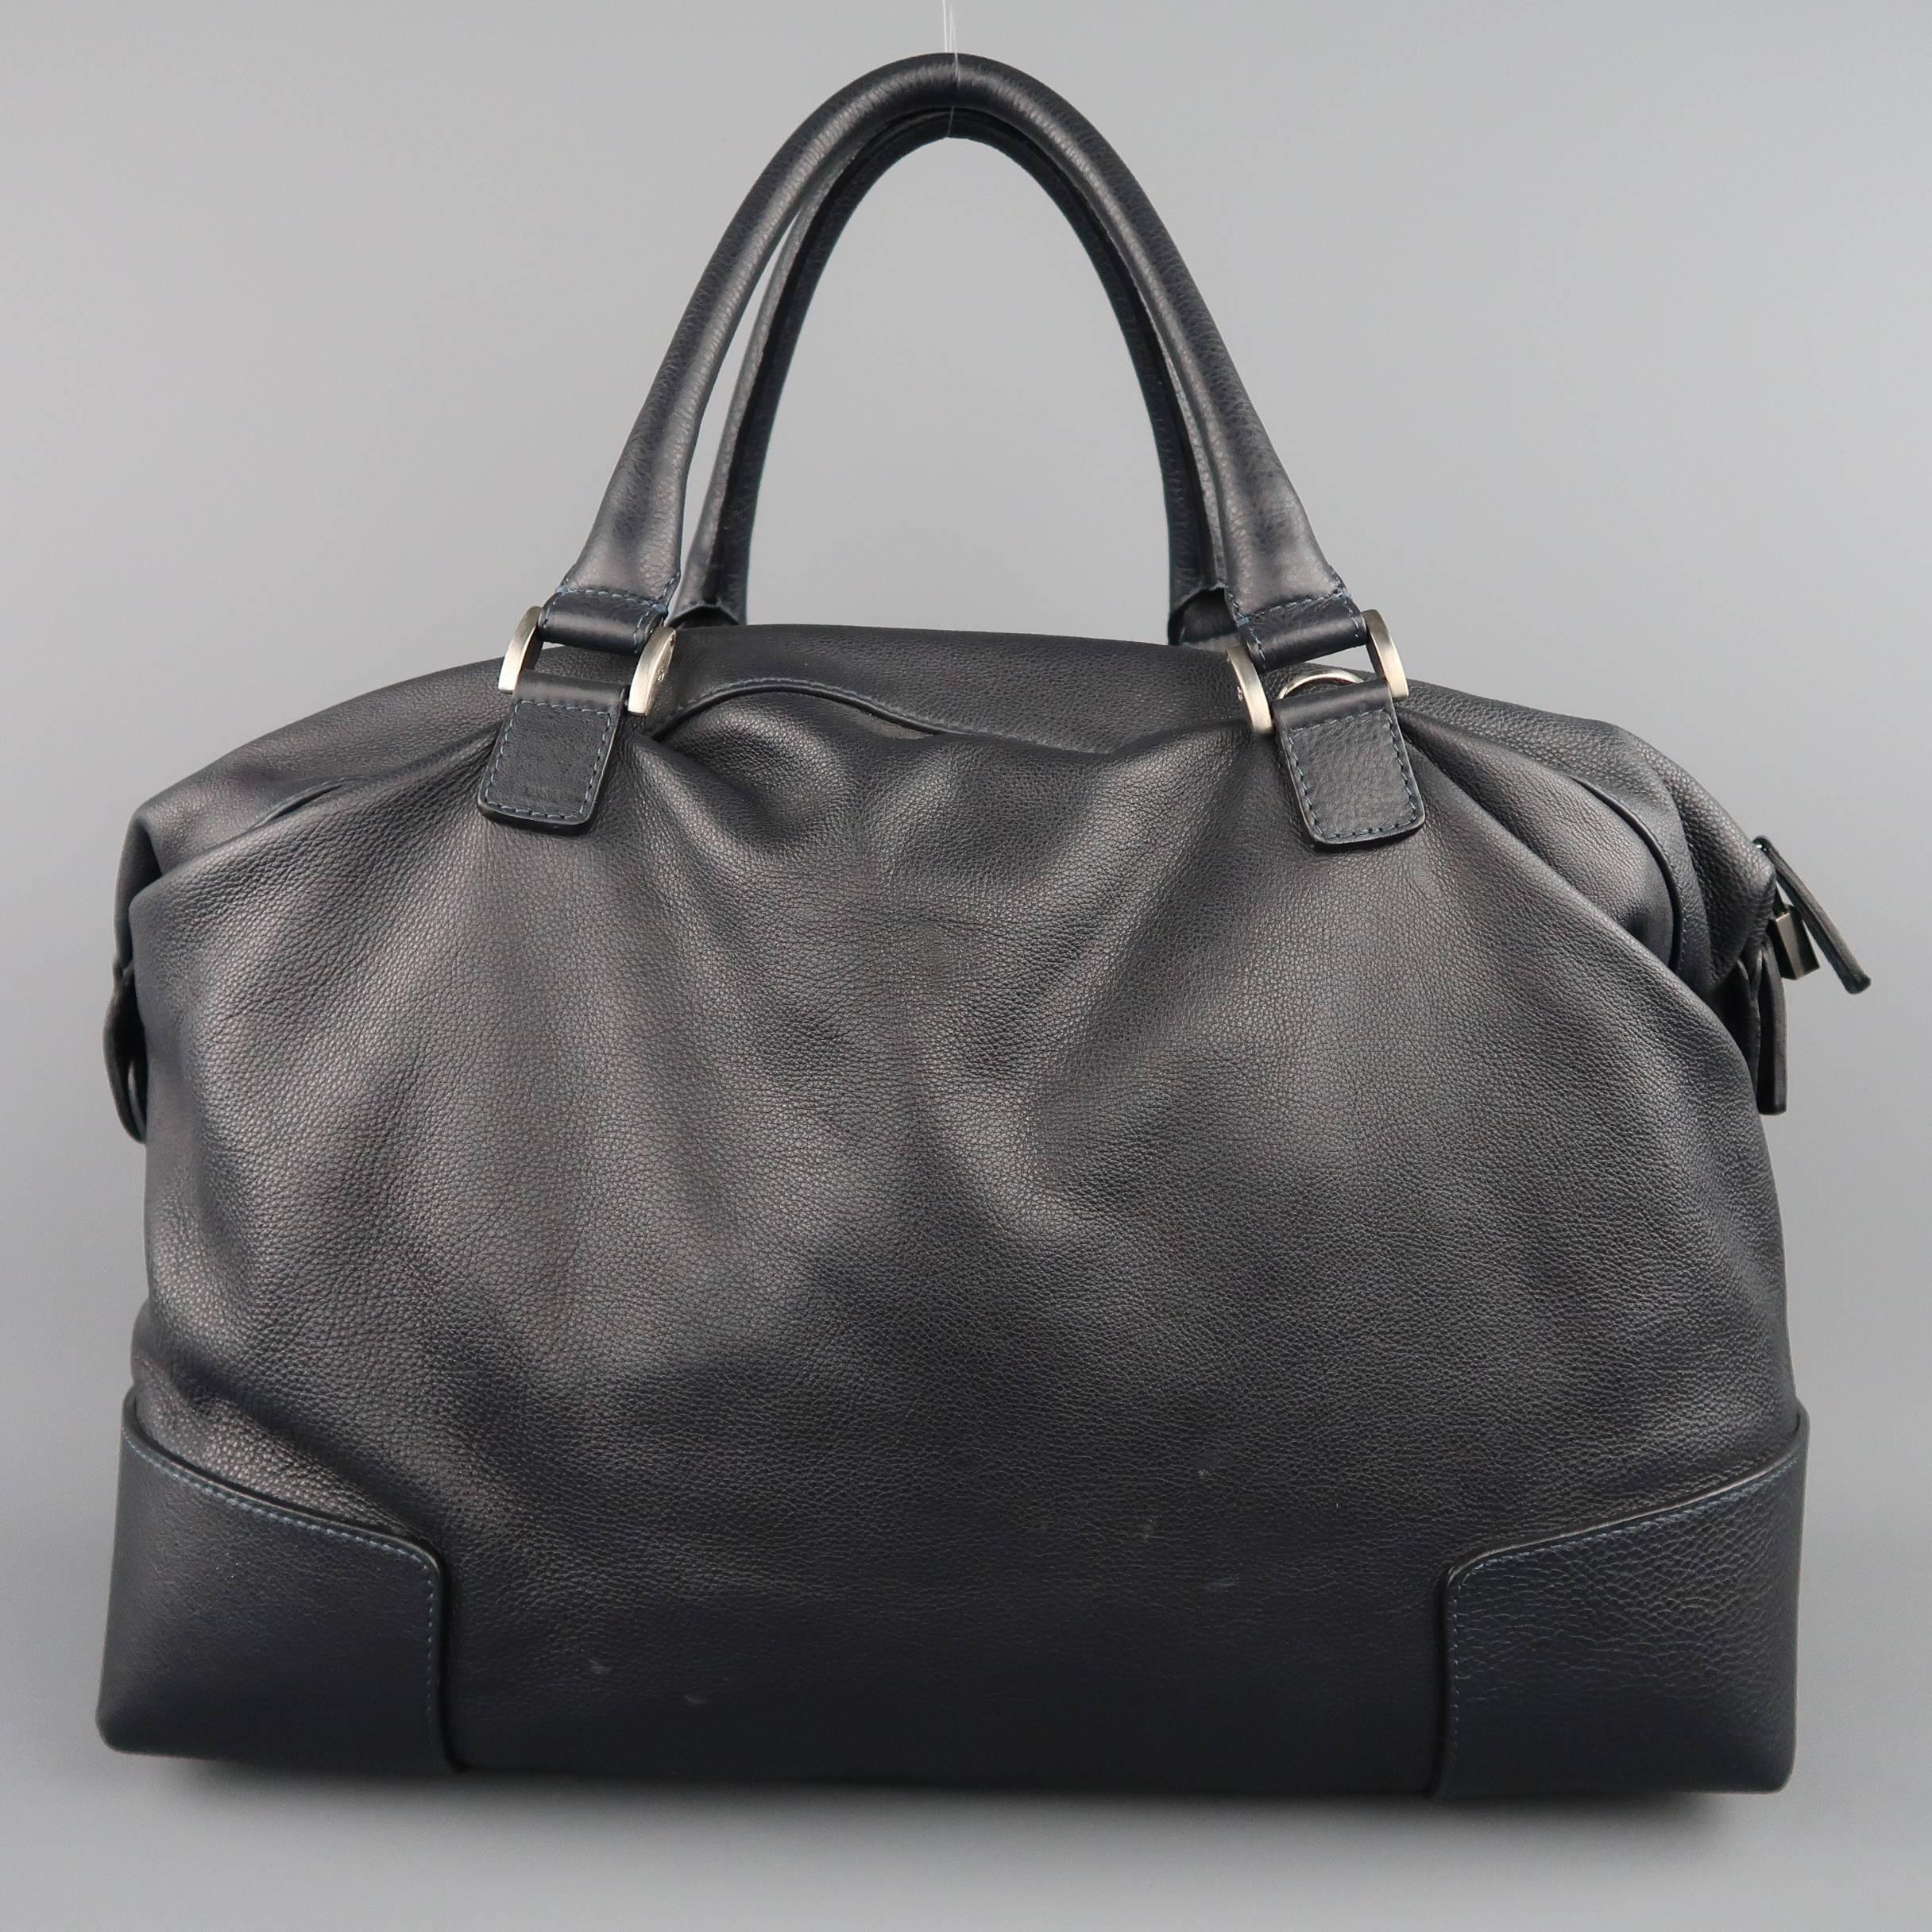 9b5d1039e1d6 Giorgio Armani Navy Leather Carry-On Bags and Leather Goods at 1stdibs